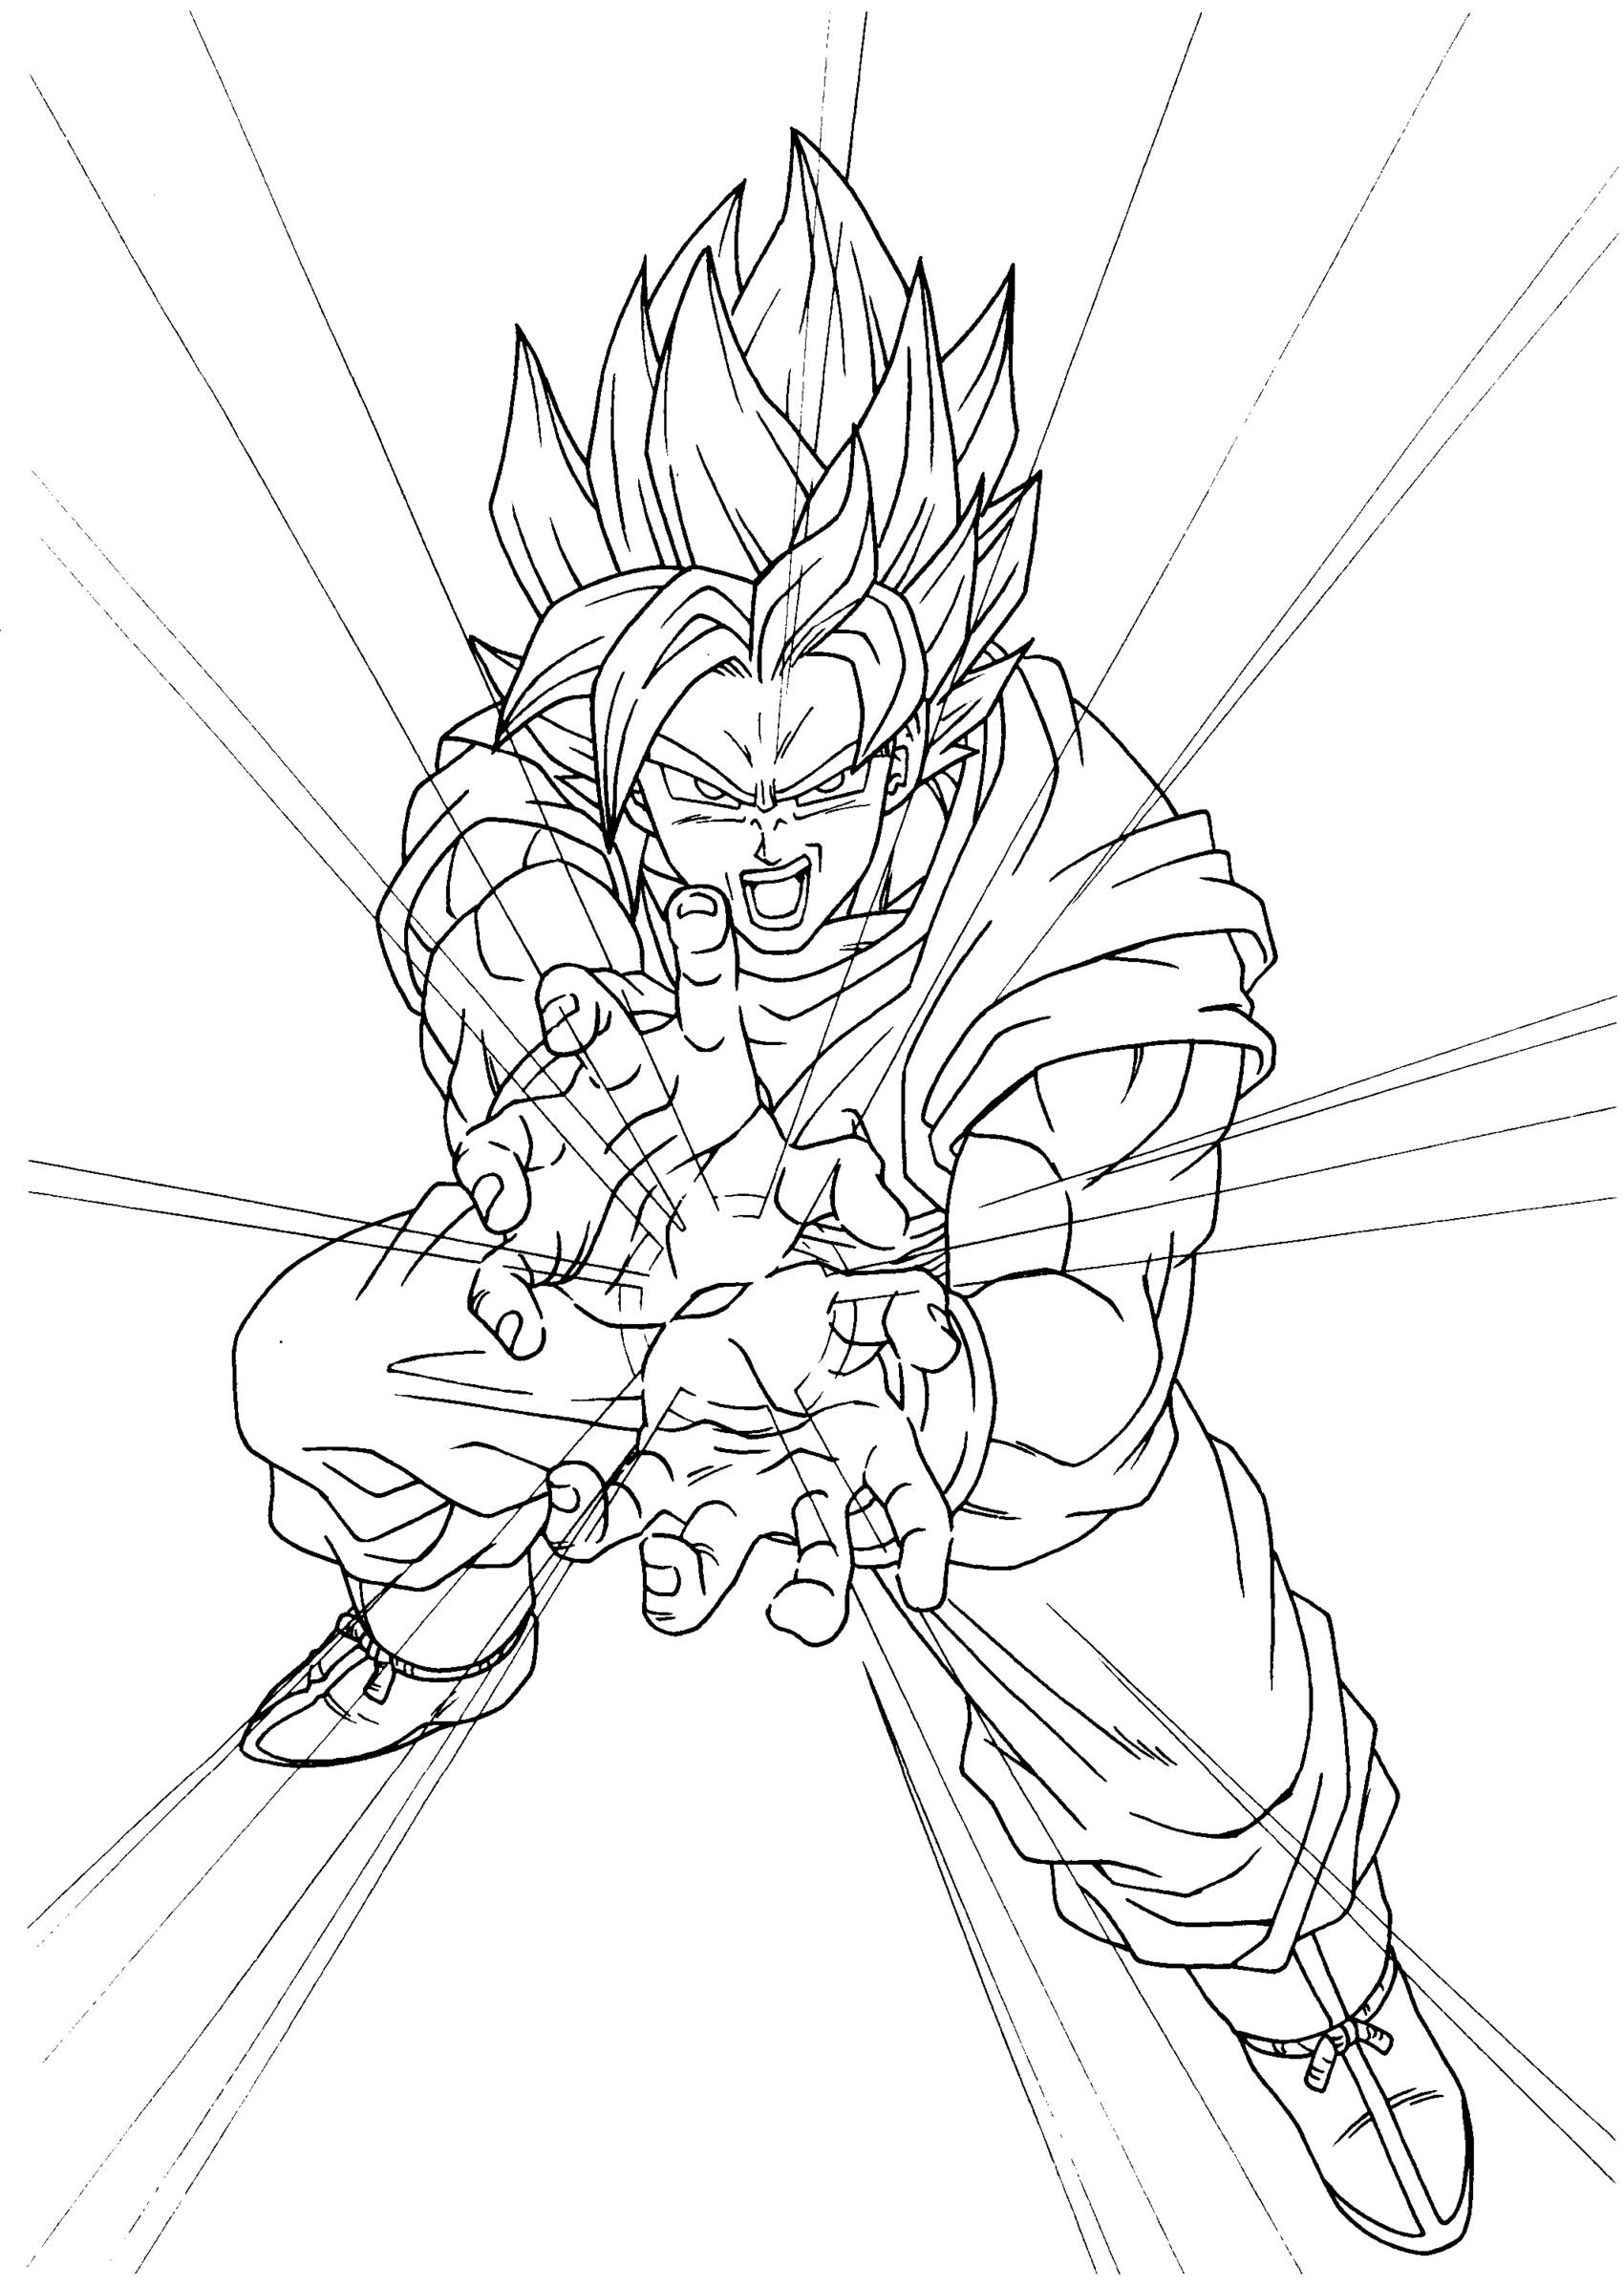 Coloriages dragon ball z 5 coloriage dragon ball z - Dessin de dragon ball za imprimer ...